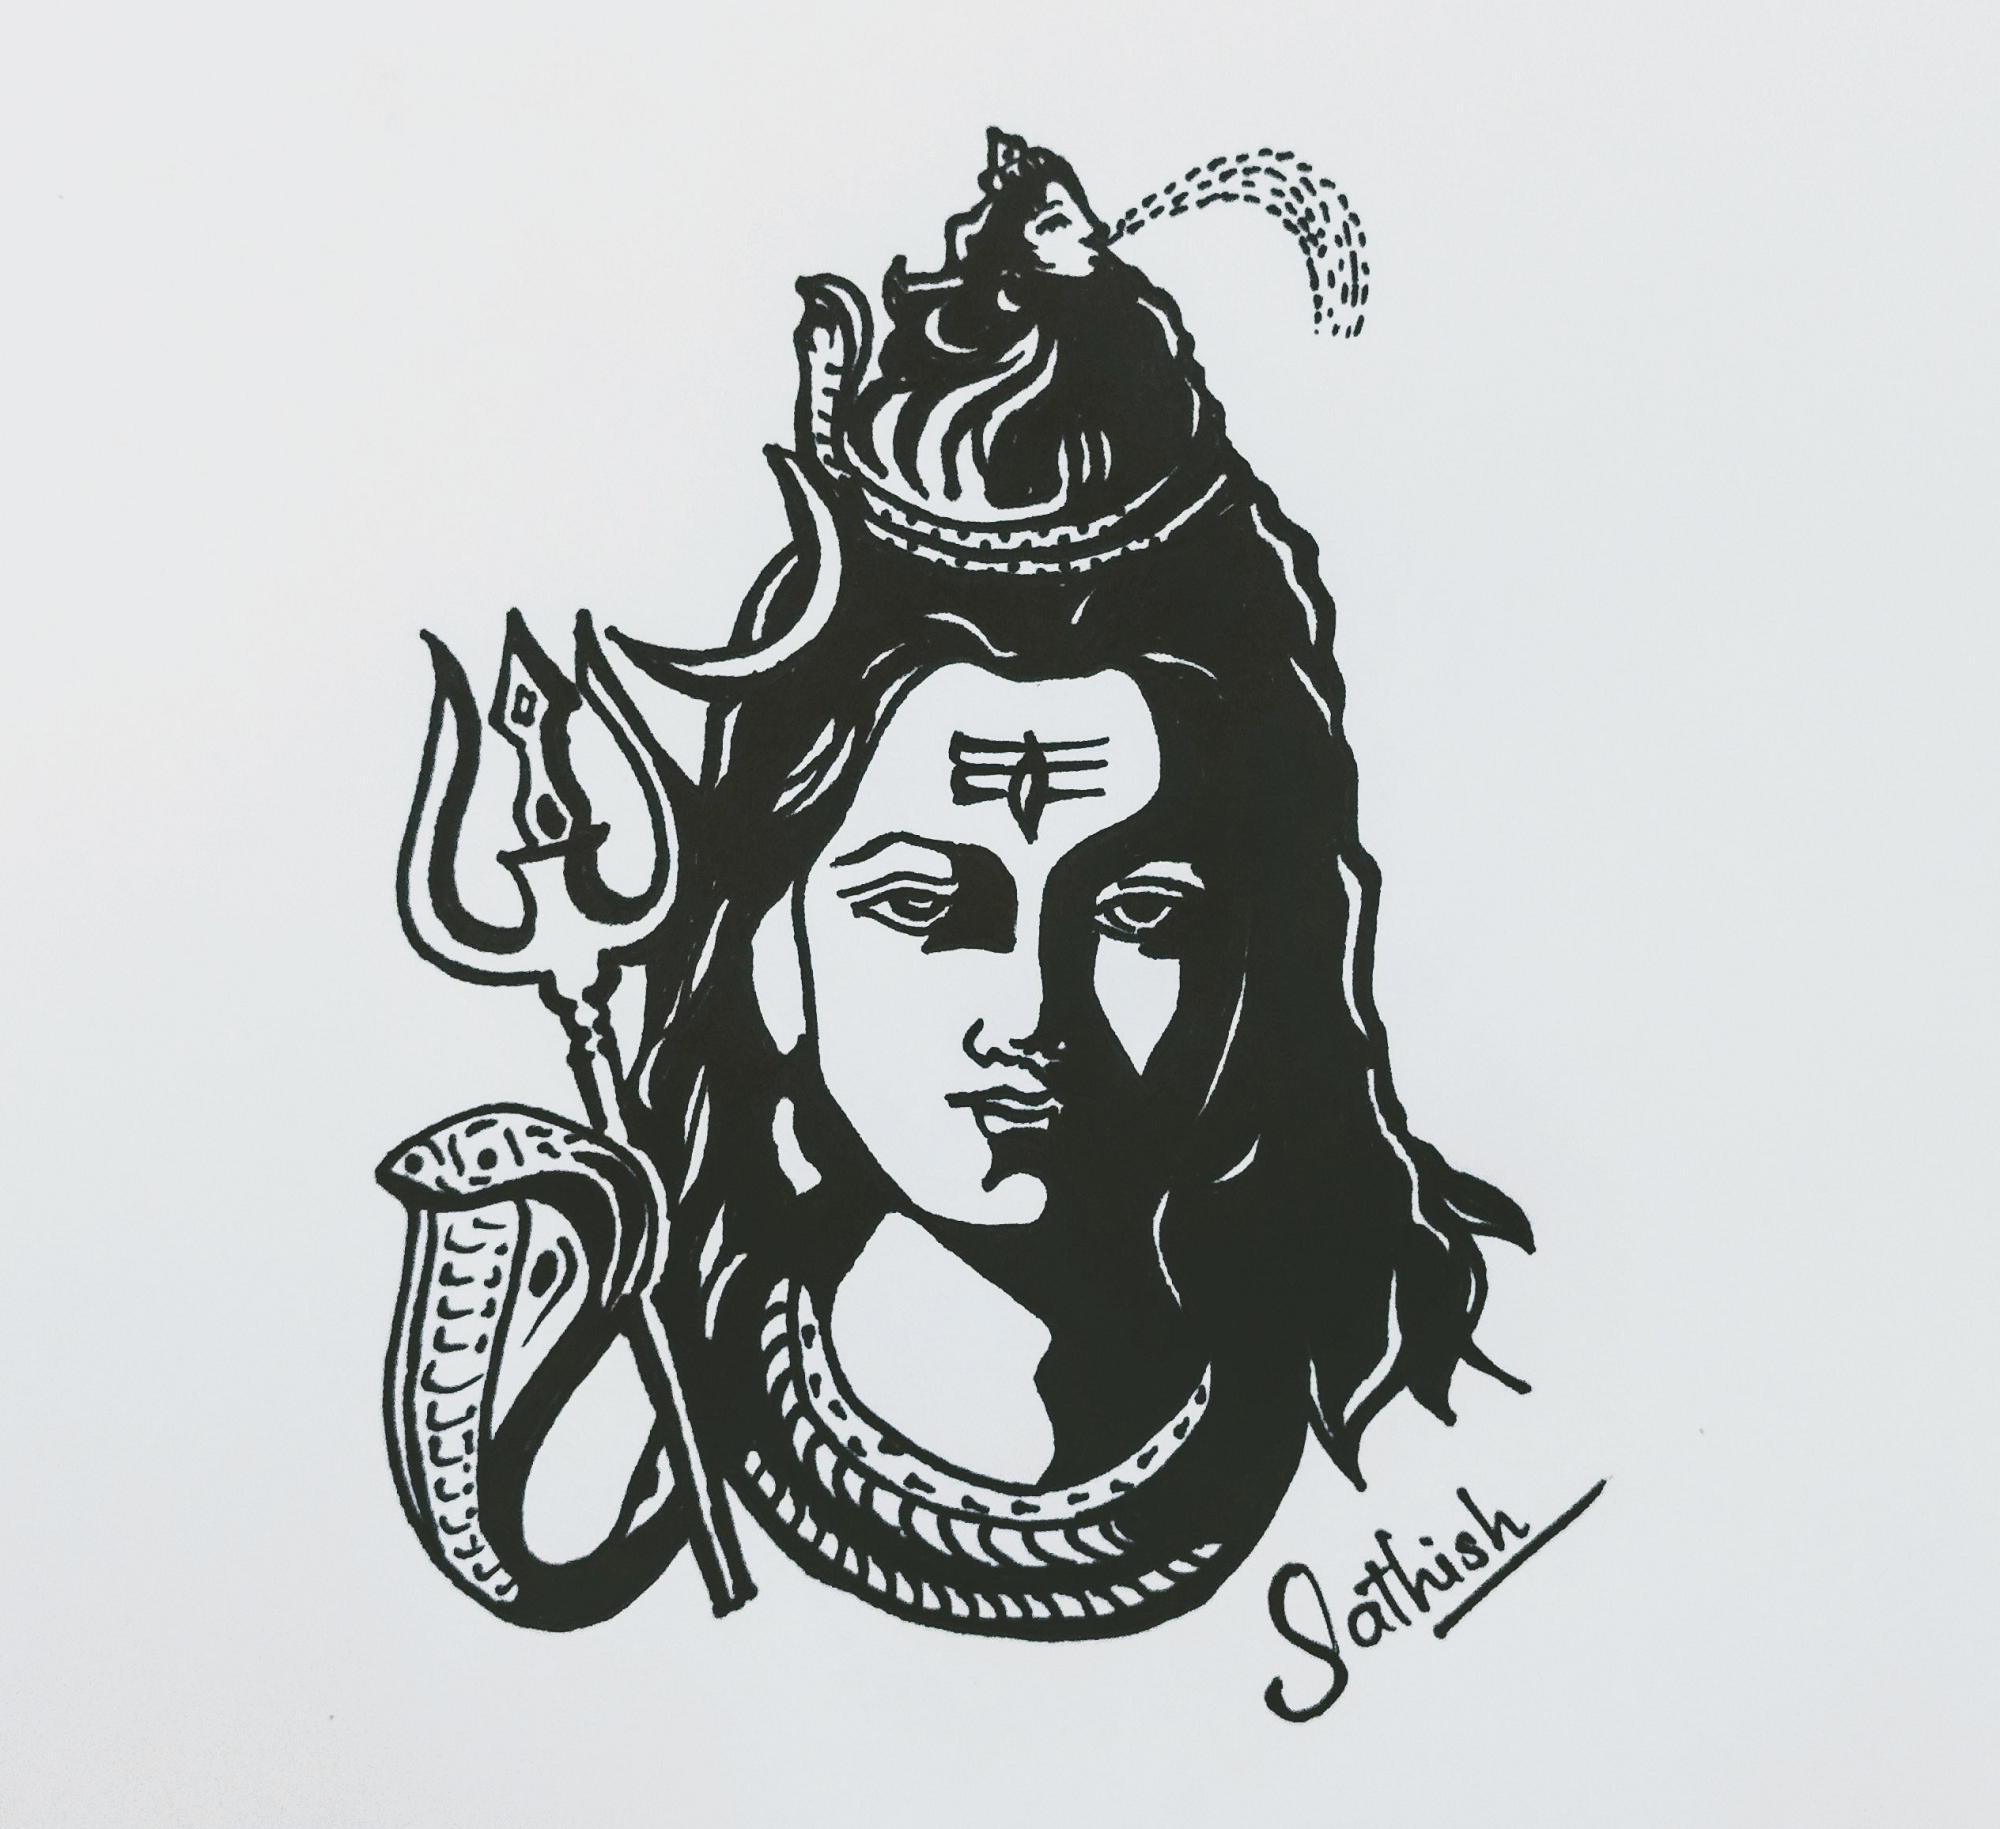 My Drawing Of Lord Shiva Drawing Sathishlive Pencil Art